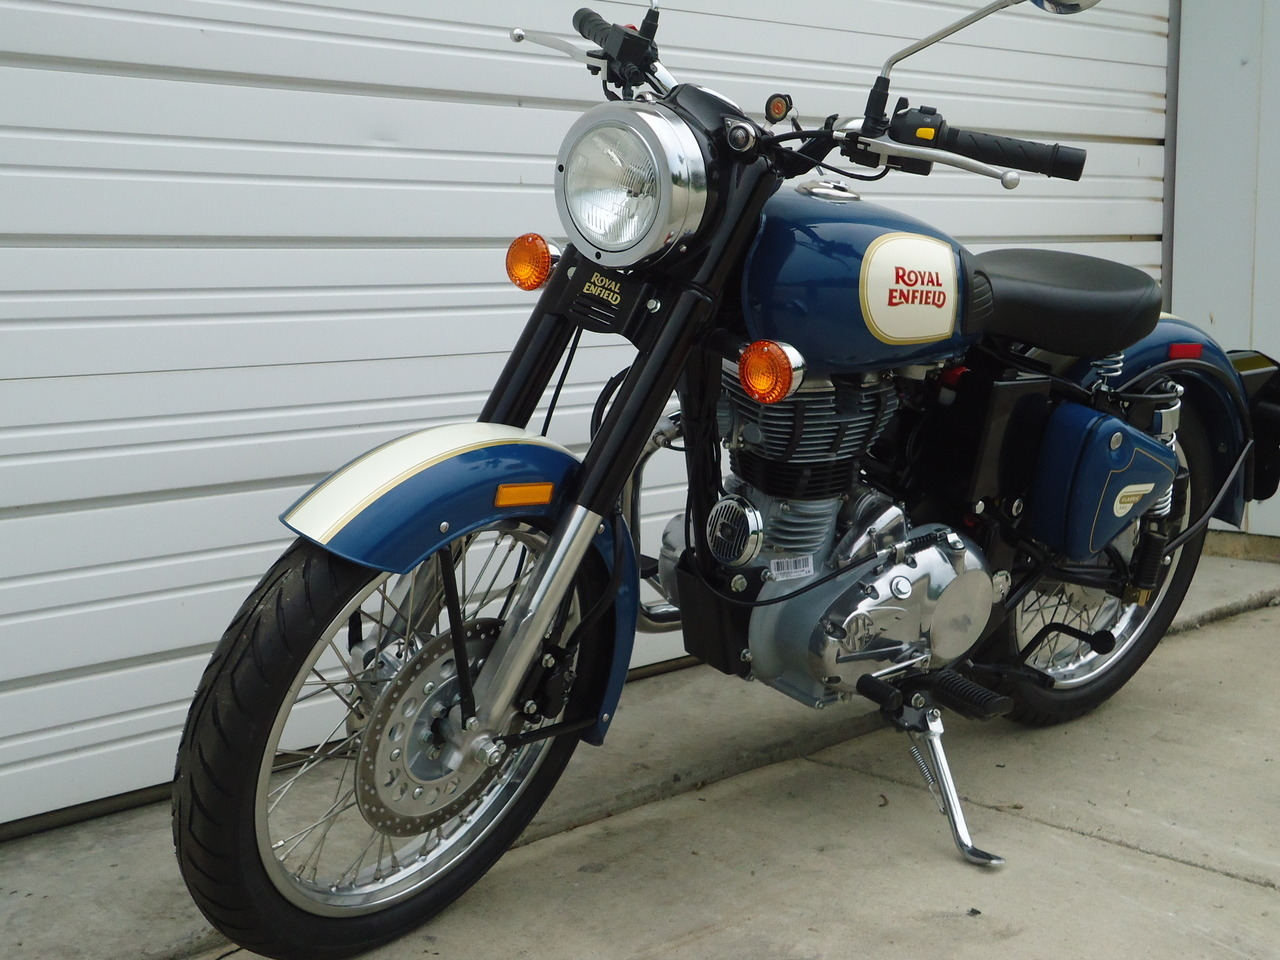 2015 Royal Enfield BULLET CLASSIC C5 (EFI), motorcycle listing